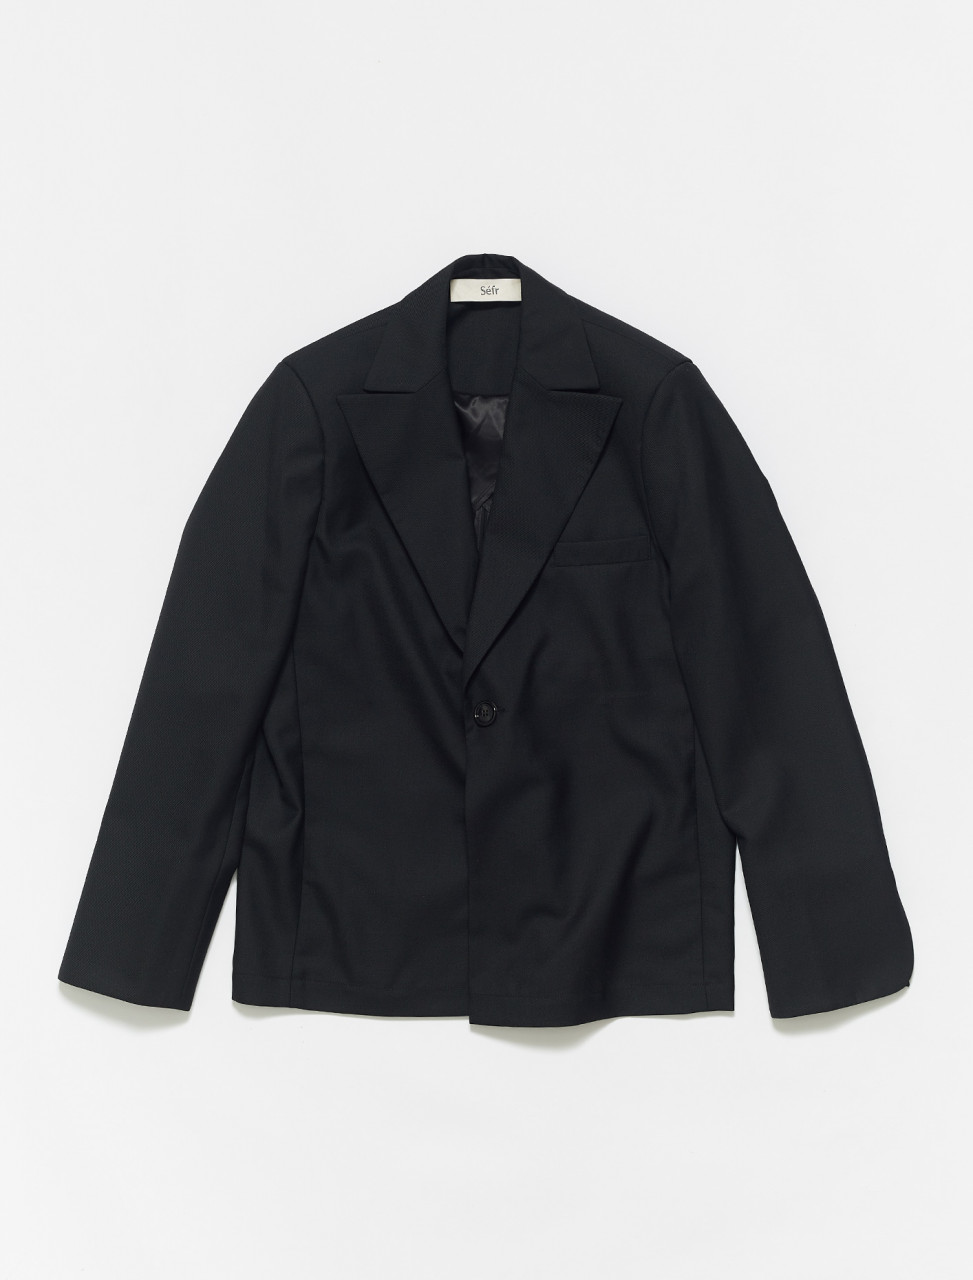 PB-B SEFR POWER BLAZER BLACK